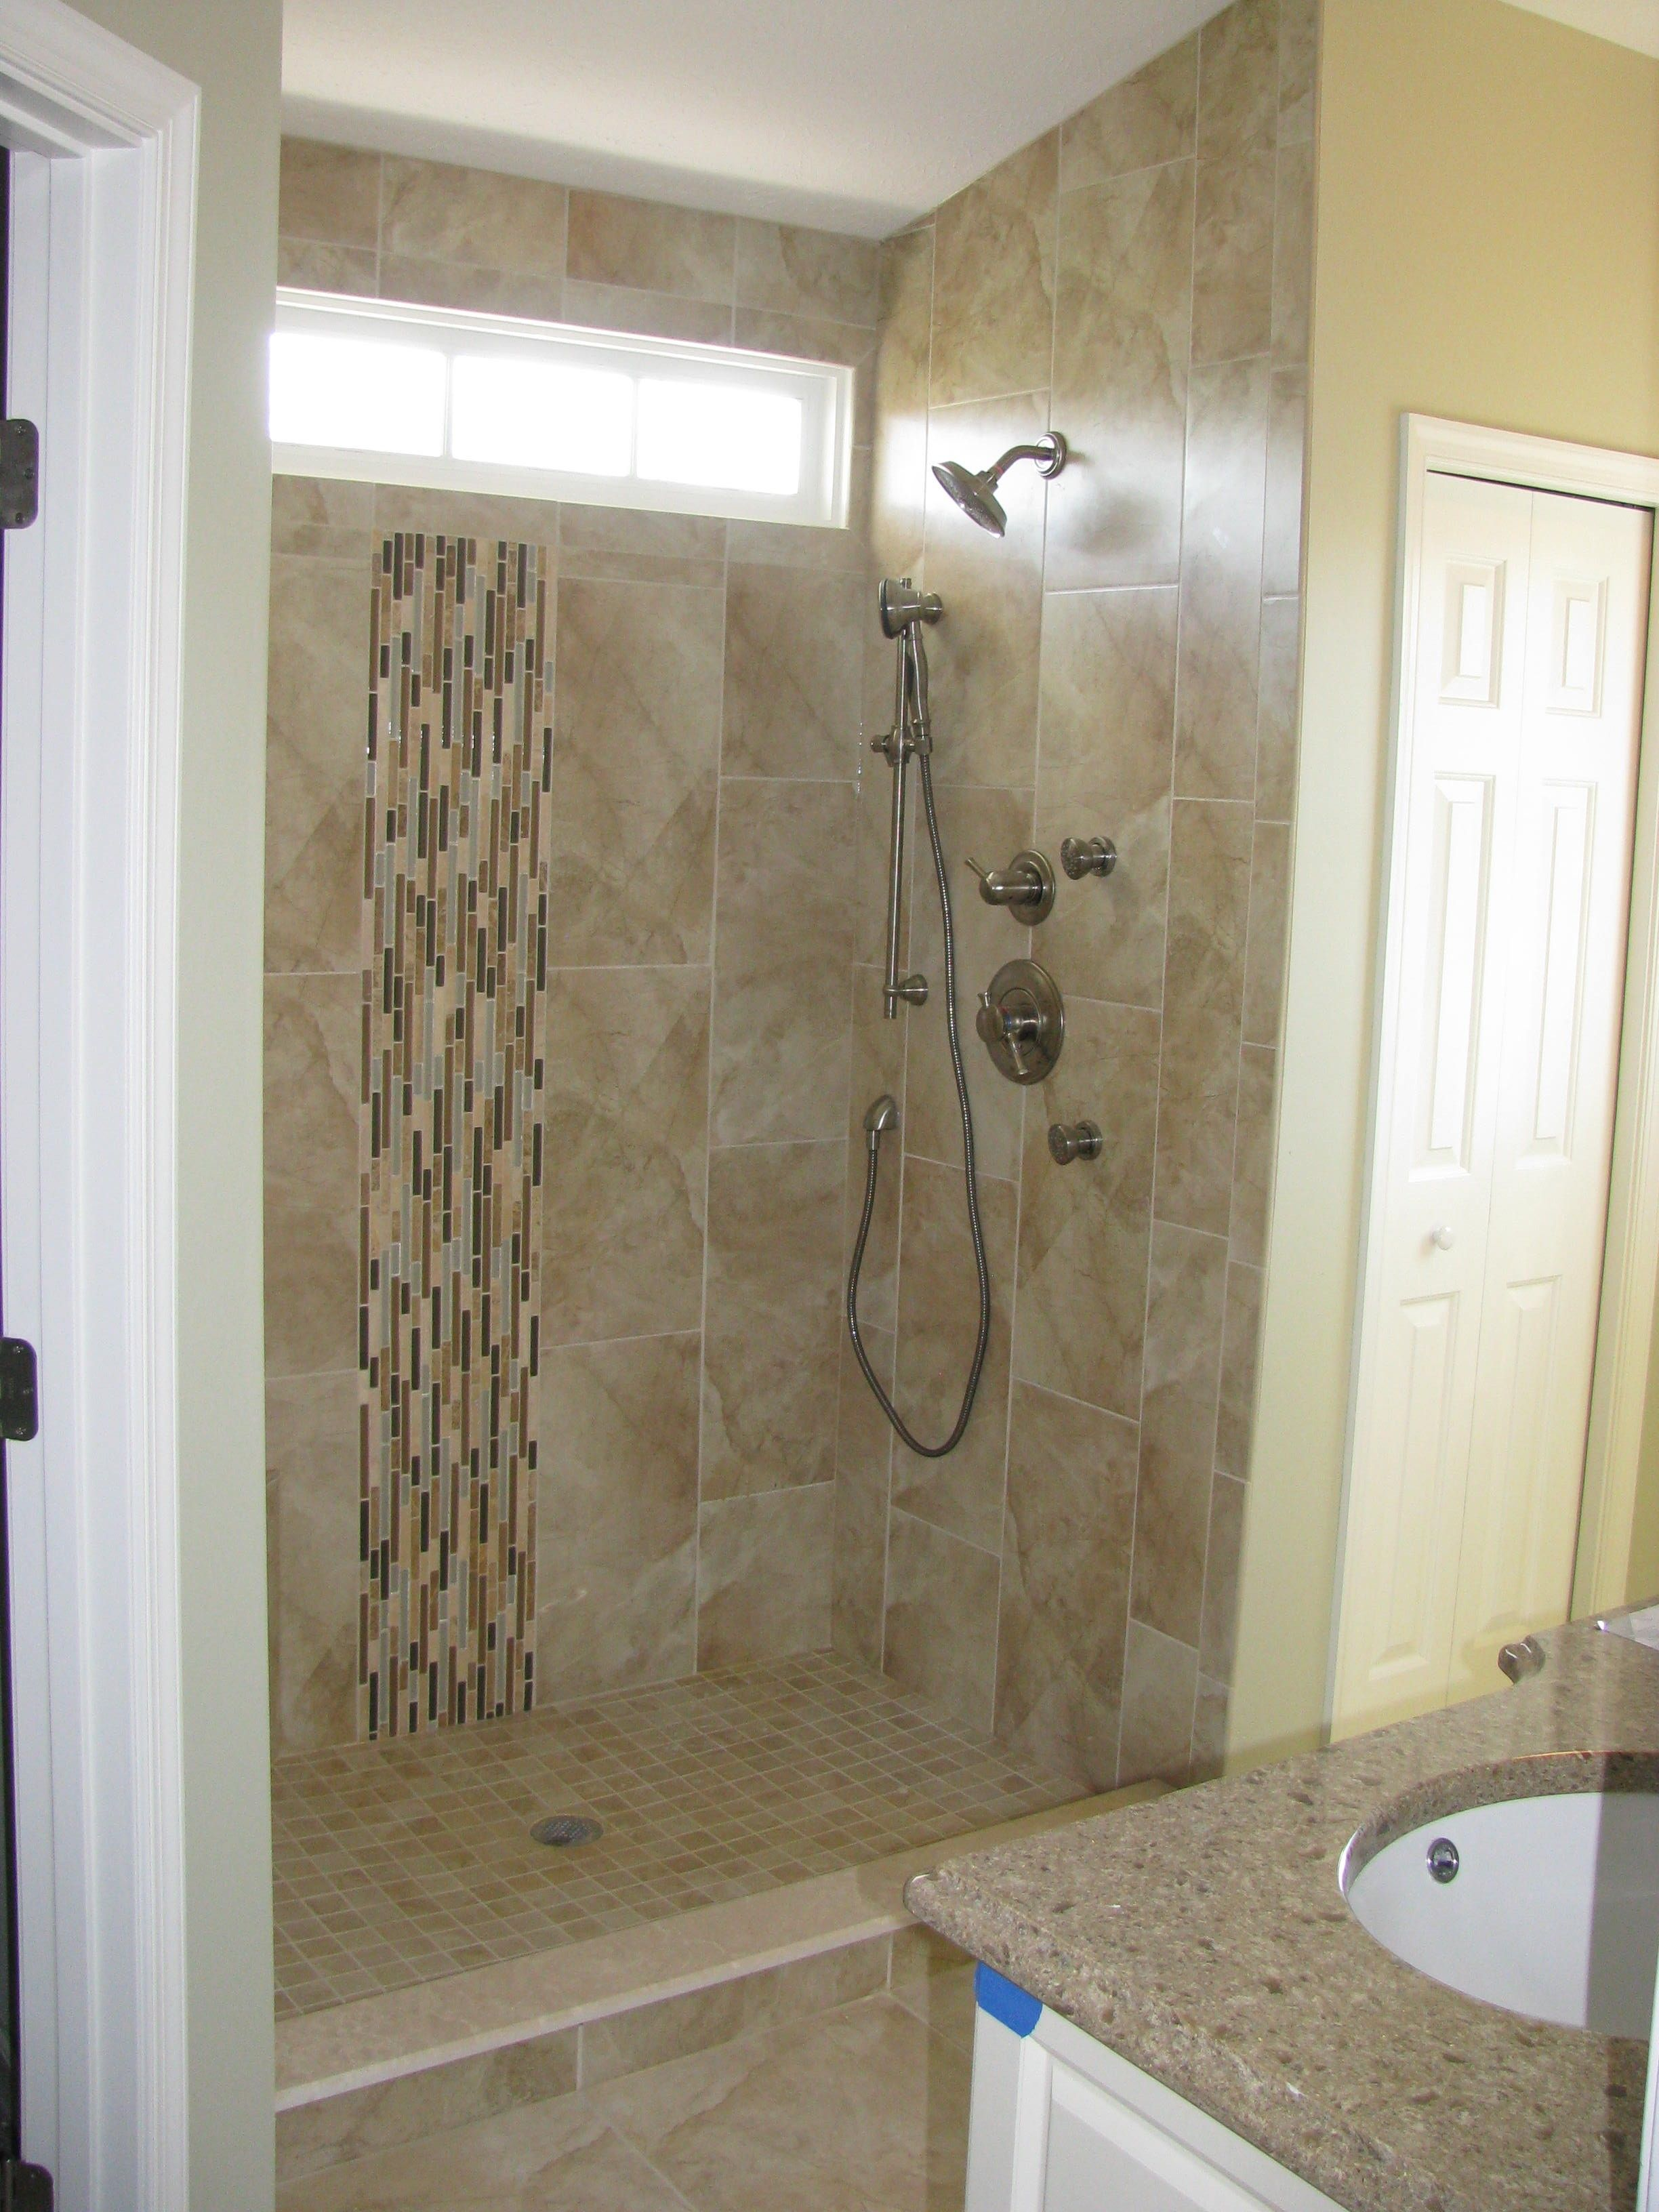 Could We Just Do A Tile Lip Around Shower Area Home Bathroom - Wall paneling for bathroom for bathroom decor ideas